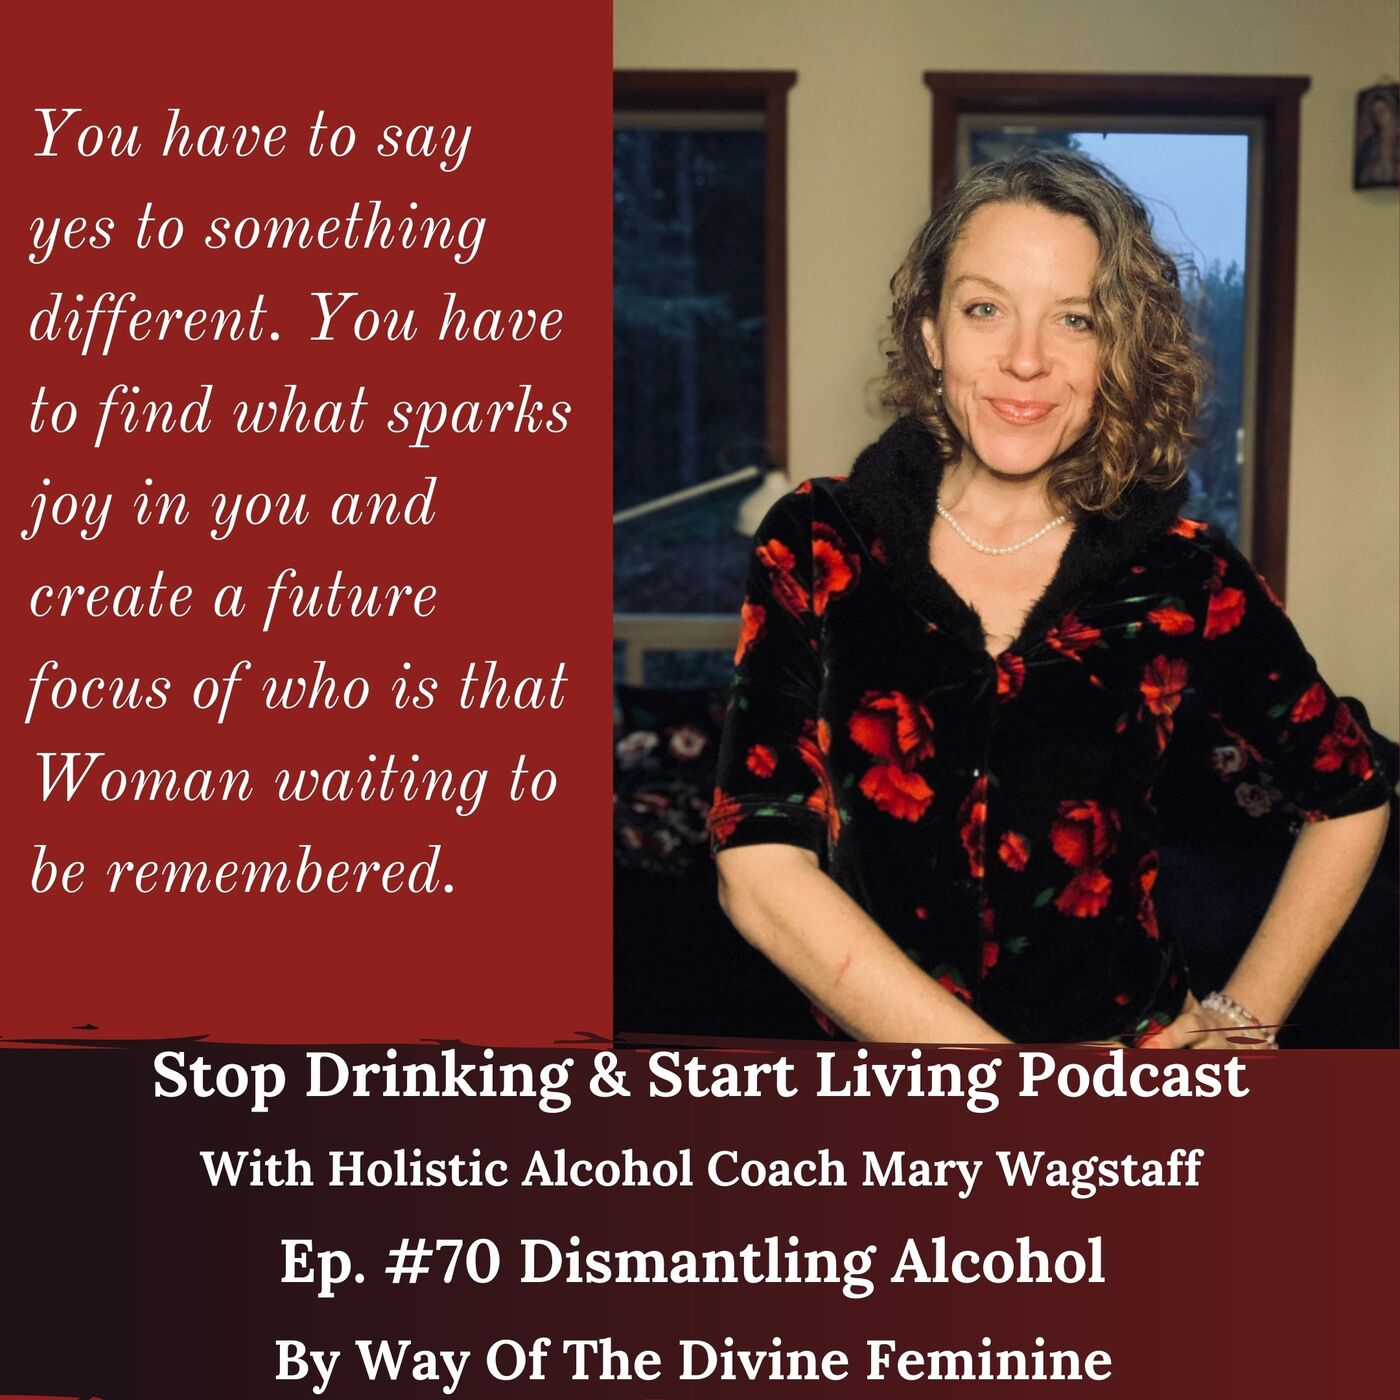 Ep. #70 Dismantling Alcohol By Way Of The Divine Feminine